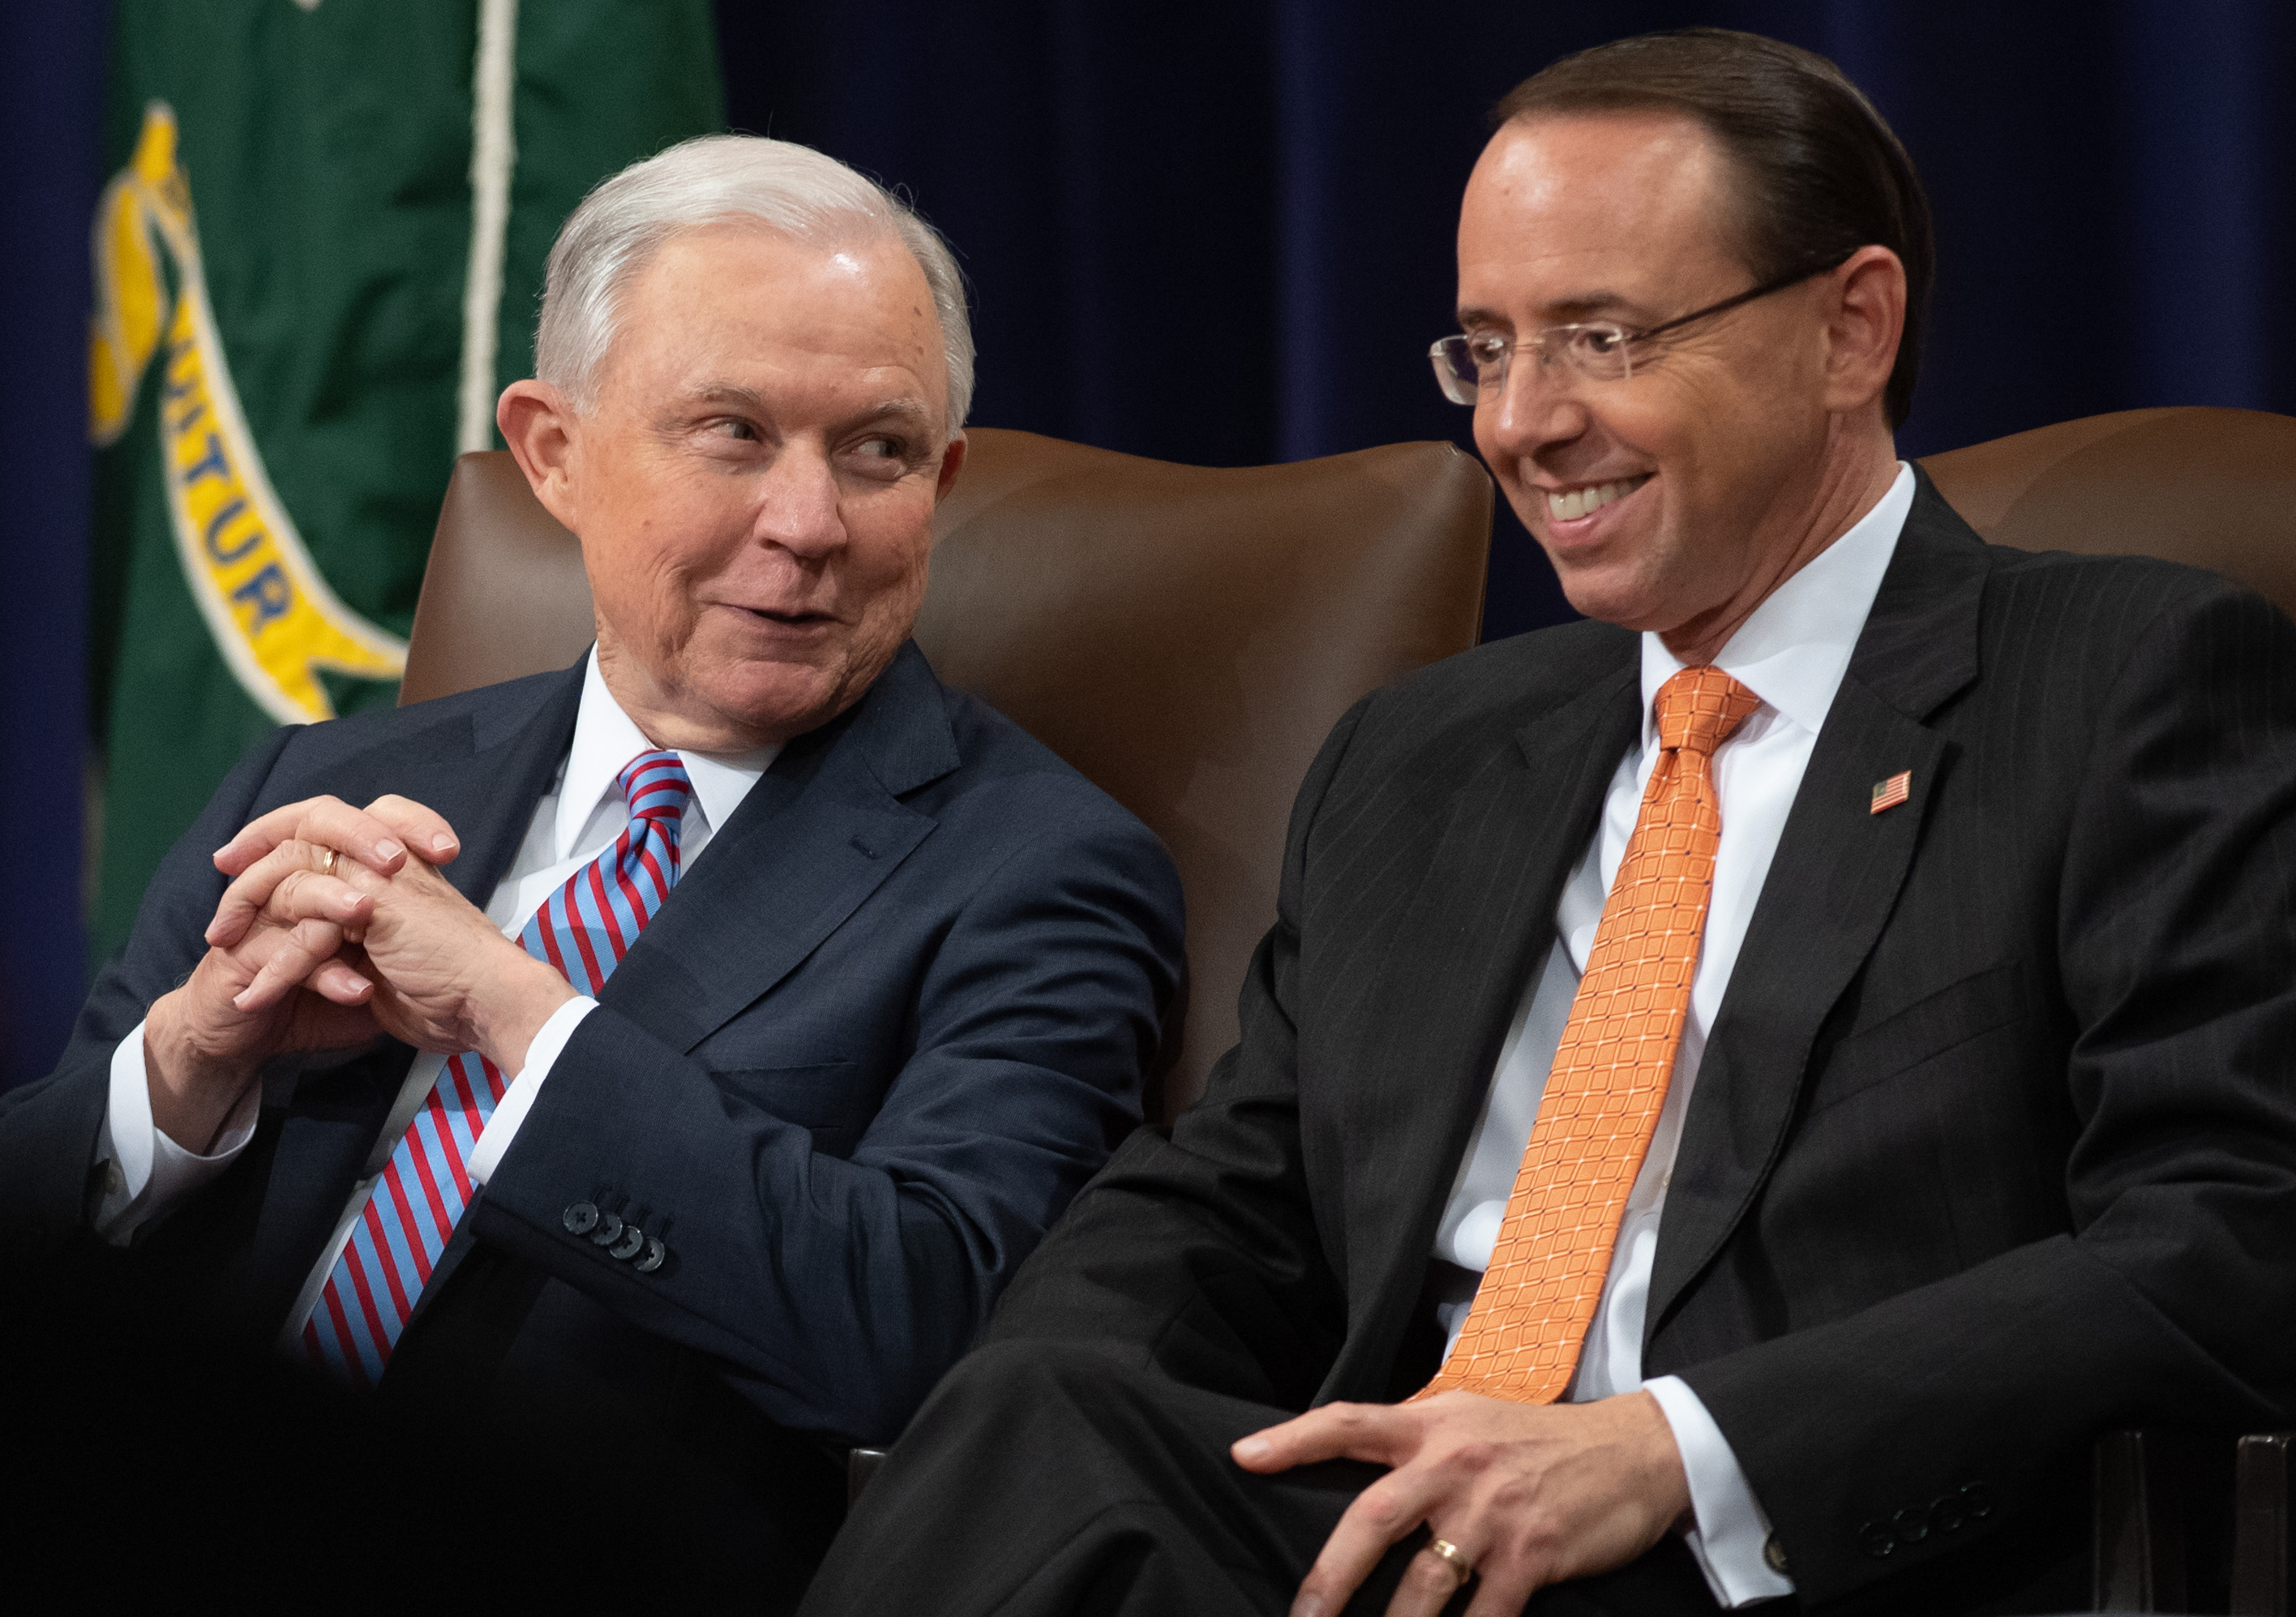 US Attorney General Jeff Sessions and Deputy Attorney General Rod Rosenstein (R) attend the Second Annual Attorney General's Award for Distinguished Service in Policing at the Department of Justice in Washington, DC, September 18, 2018.